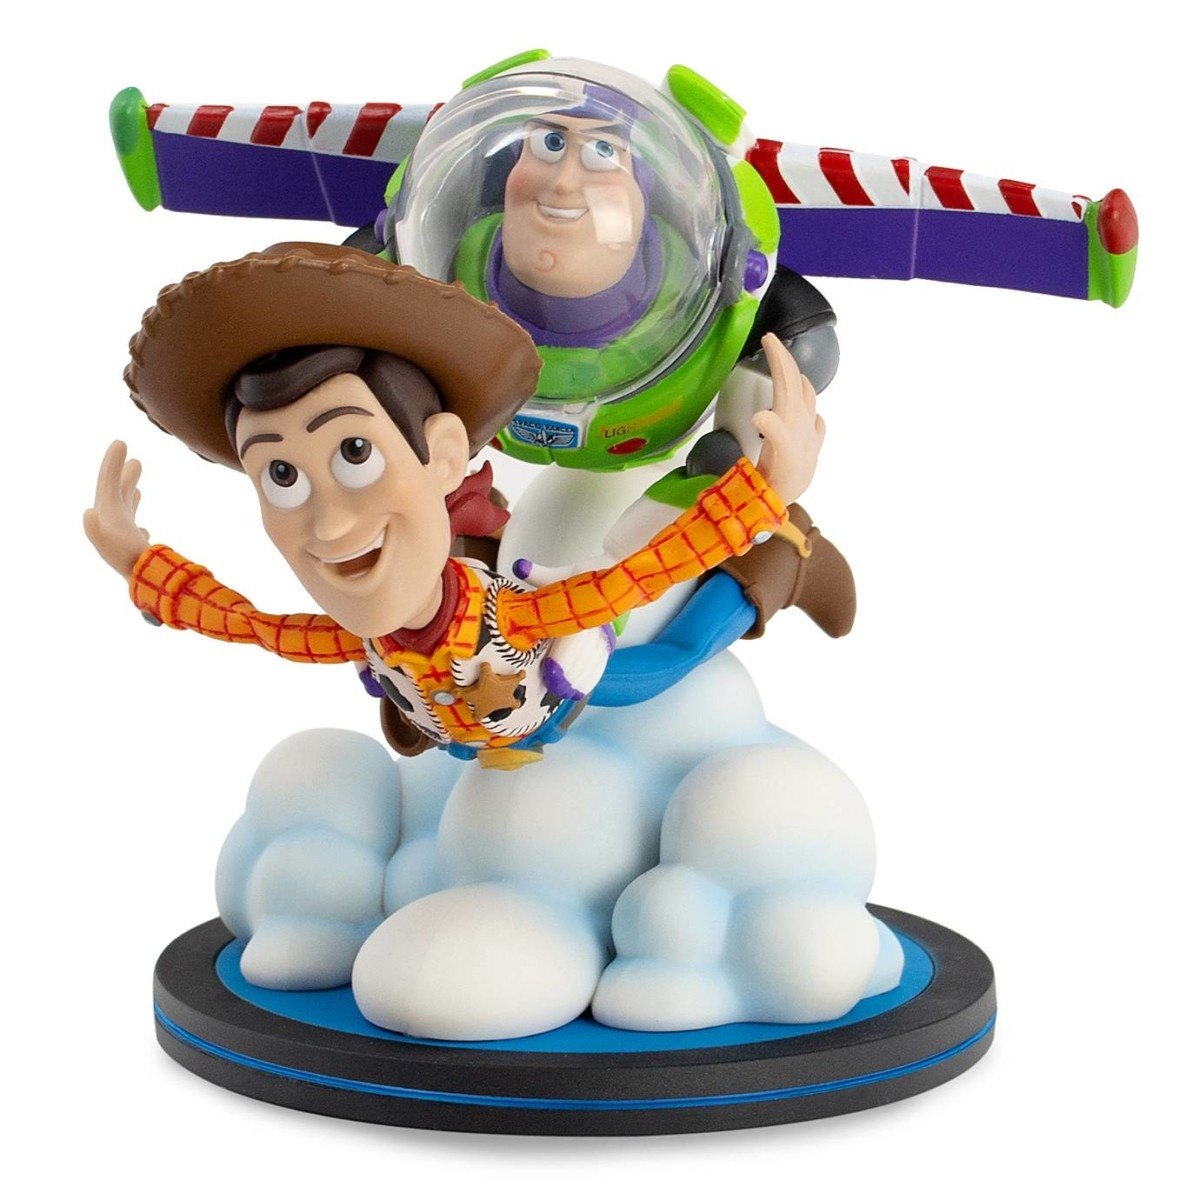 Woody and Buzz Lightyear Q-Fig Max by QMx – Toy Story 25th Anniversary $39.99